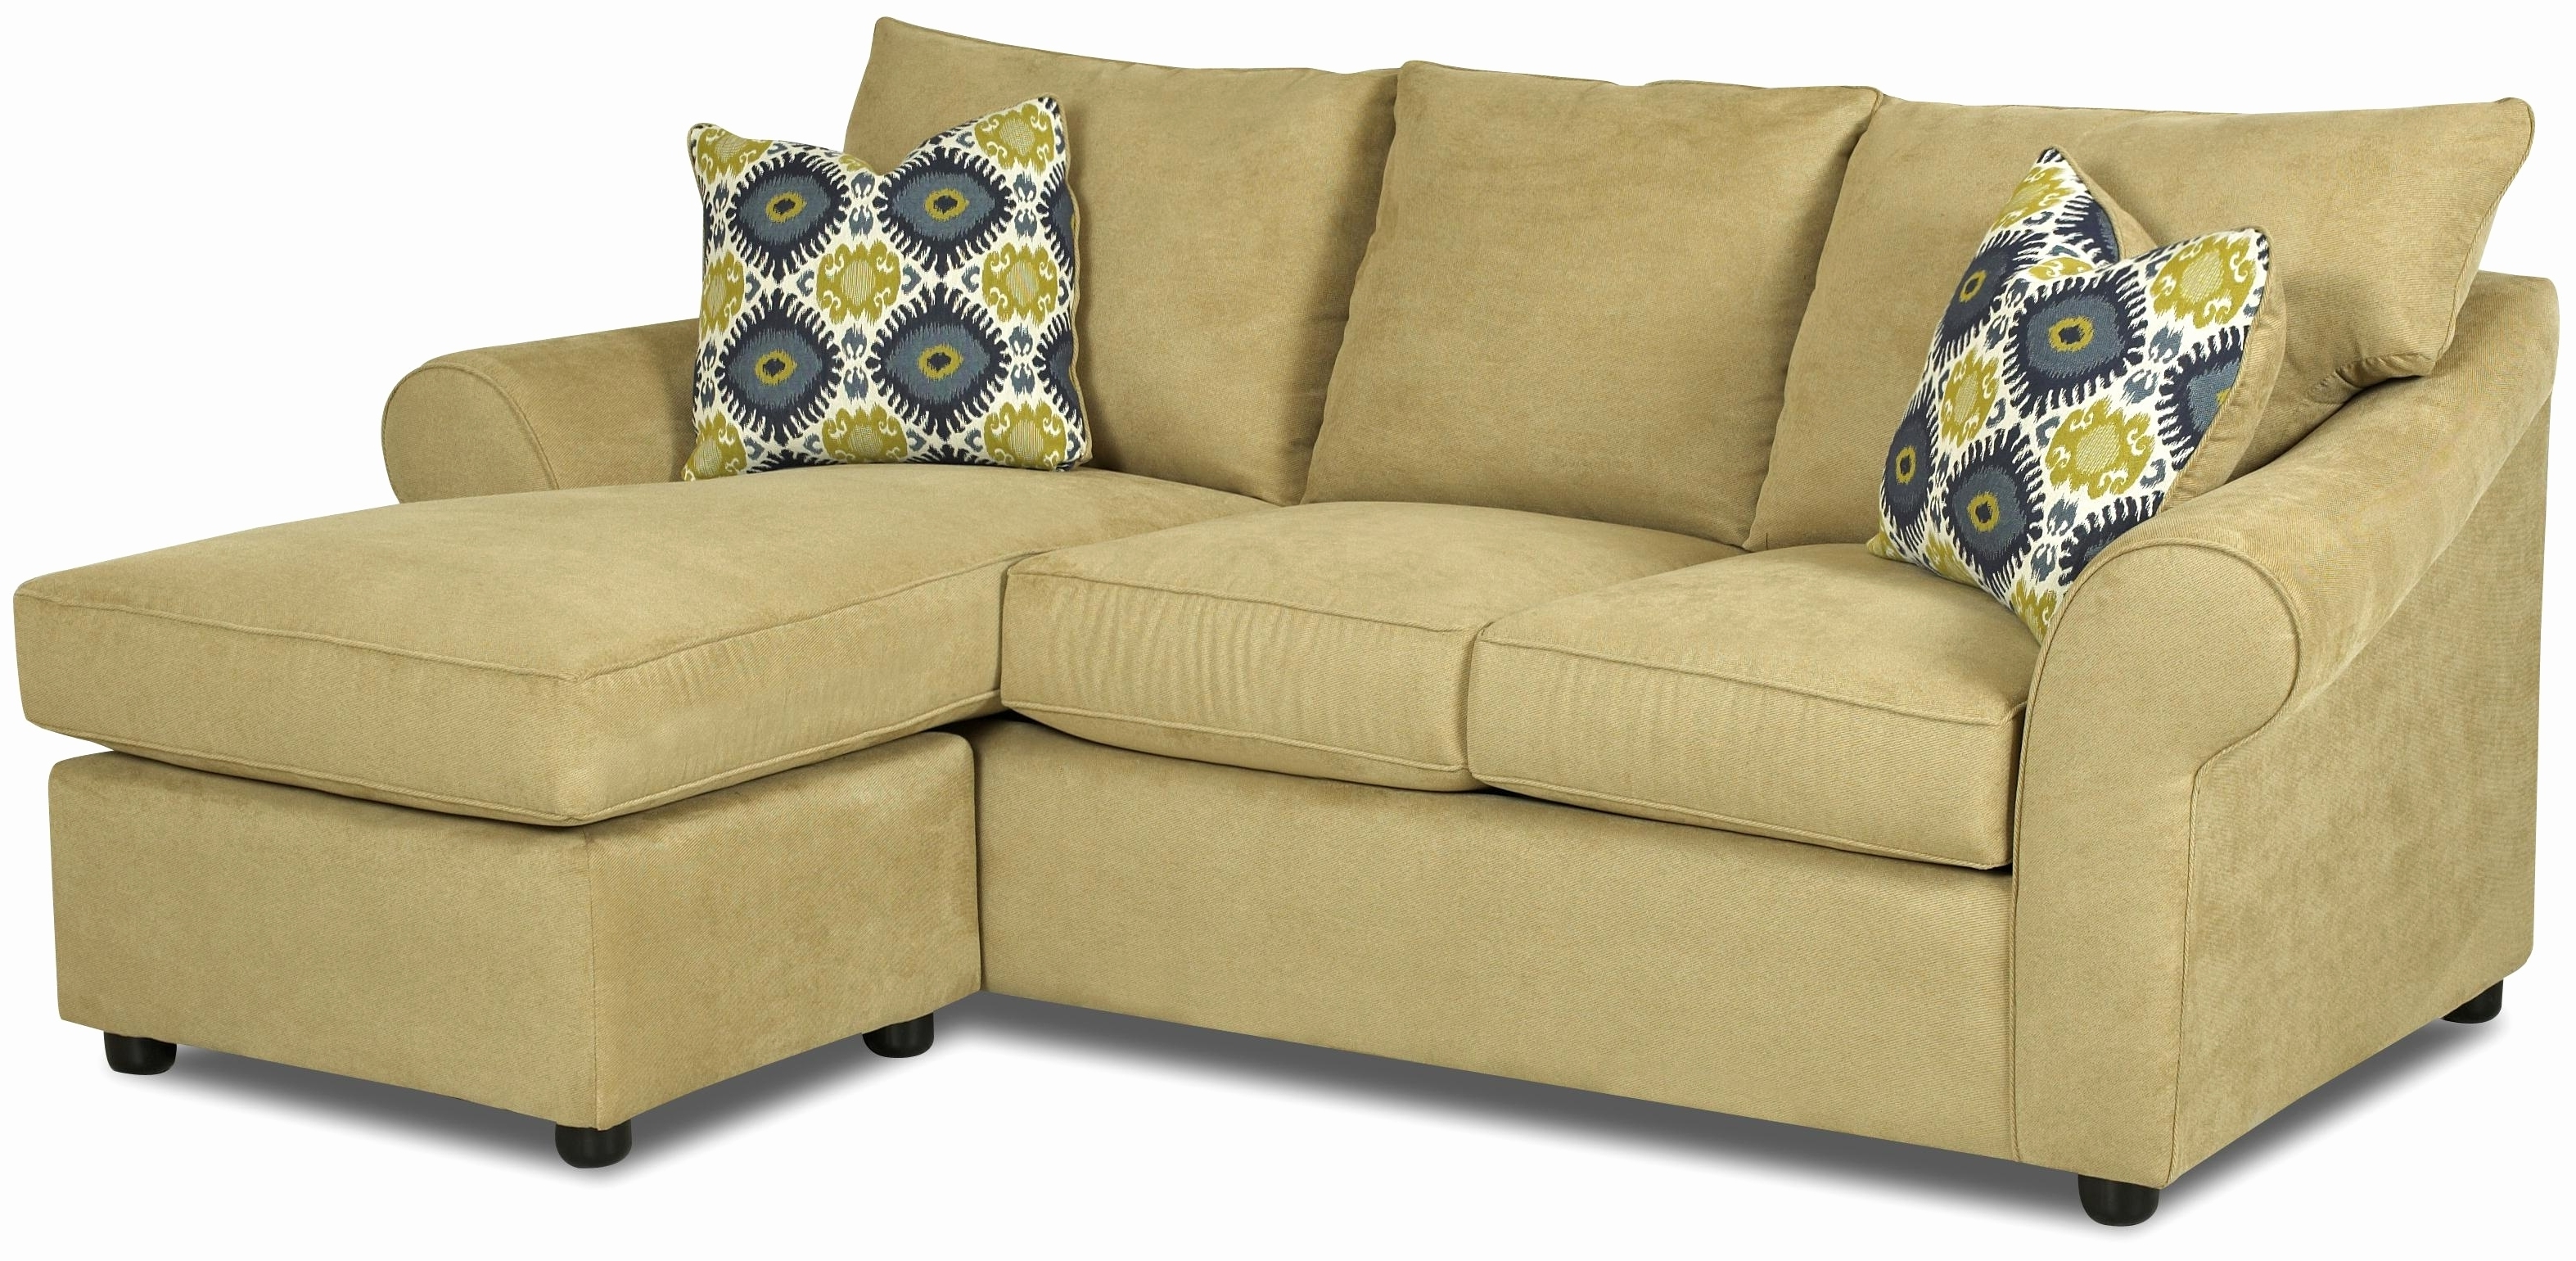 2018 New Sofa With 2 Chaise Lounge 2018 – Couches And Sofas Ideas With Small Chaise Lounges (View 1 of 15)